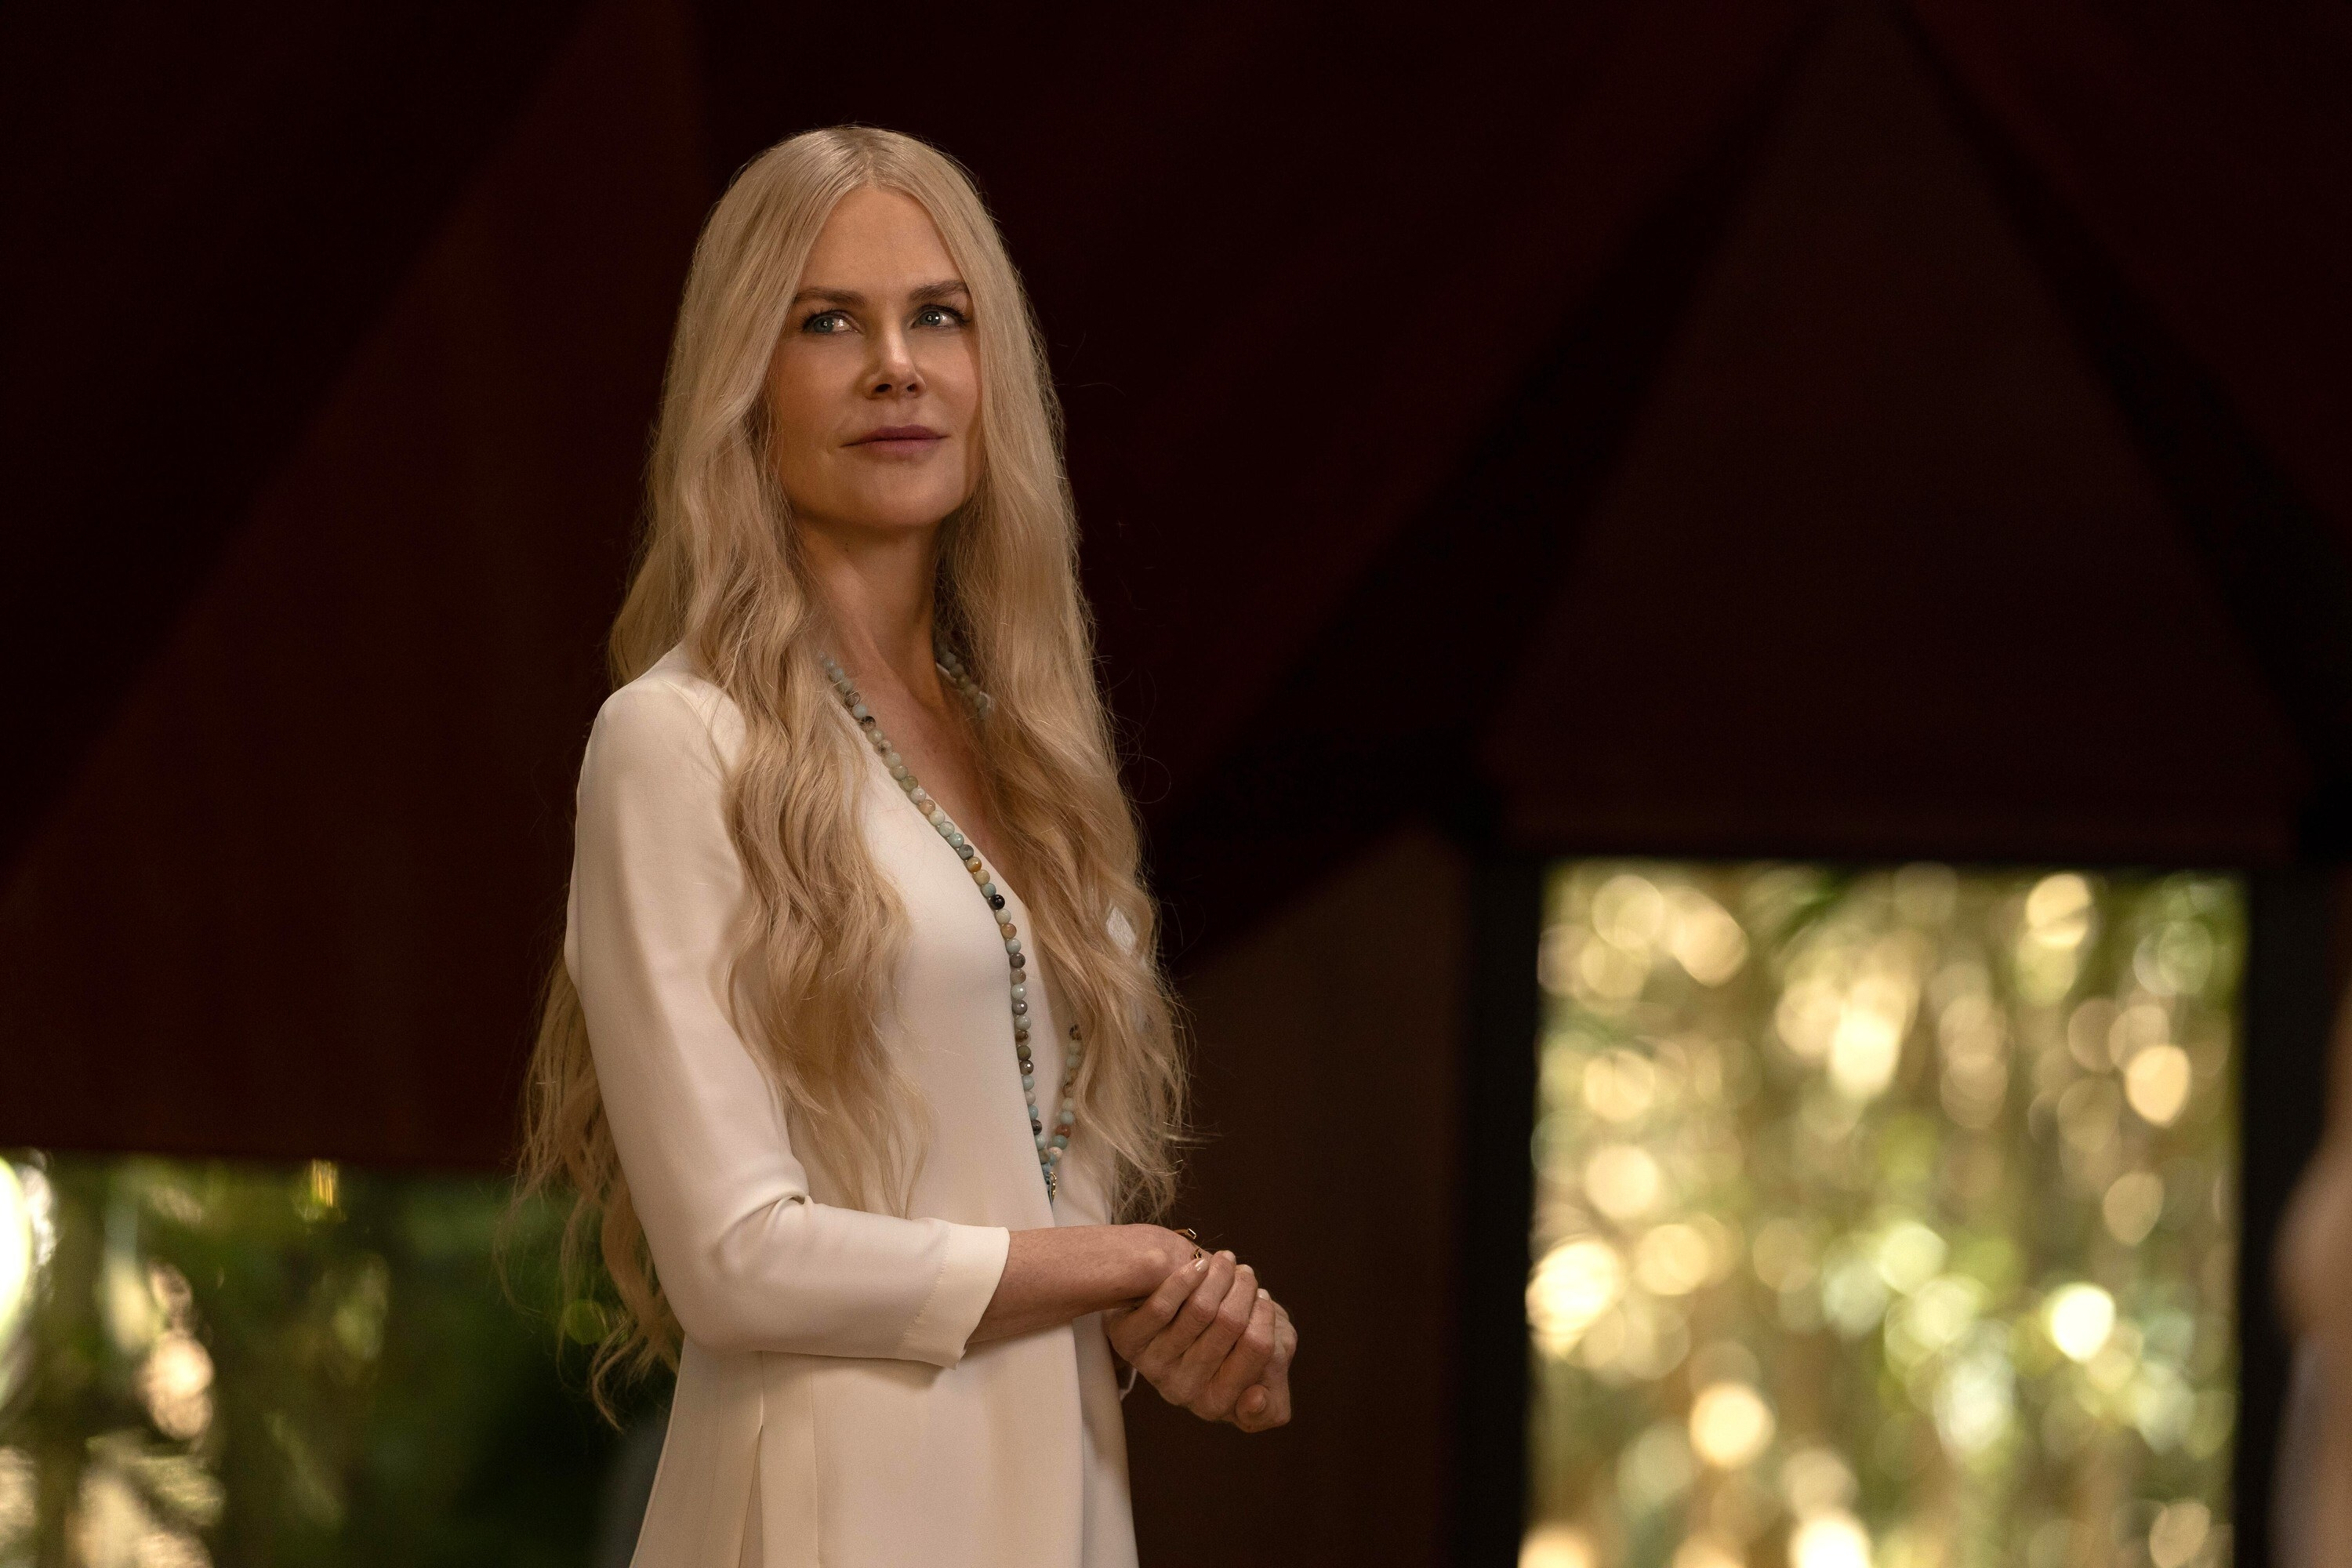 Nicole Kidman with long blonde hair looks at the guests